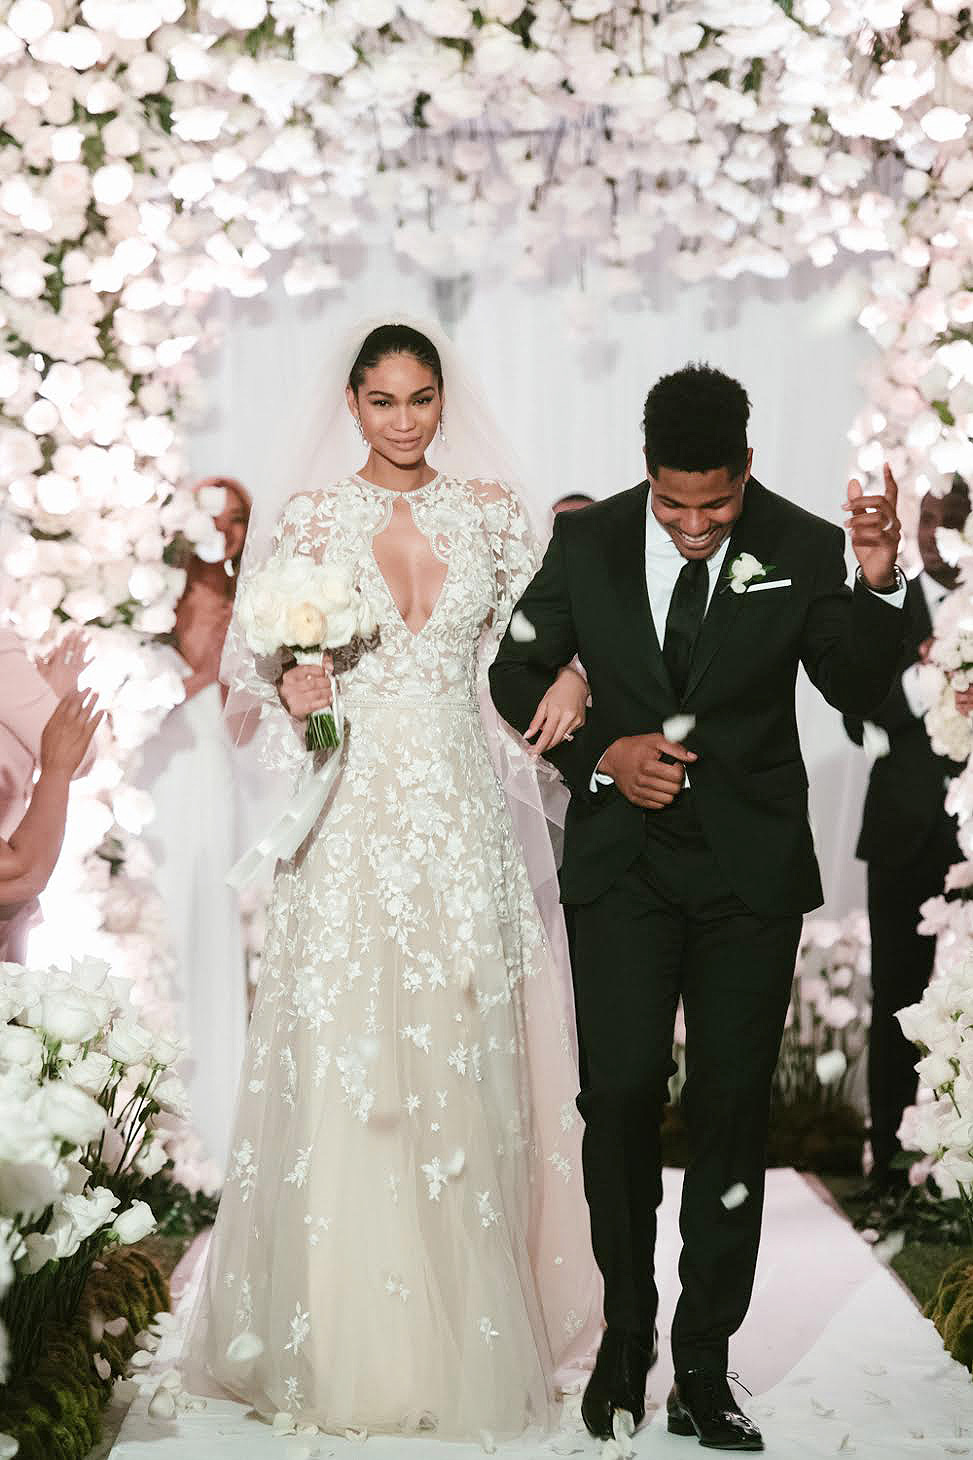 Chanel Iman Marries Sterling Shepard See Her Dress And More Pics